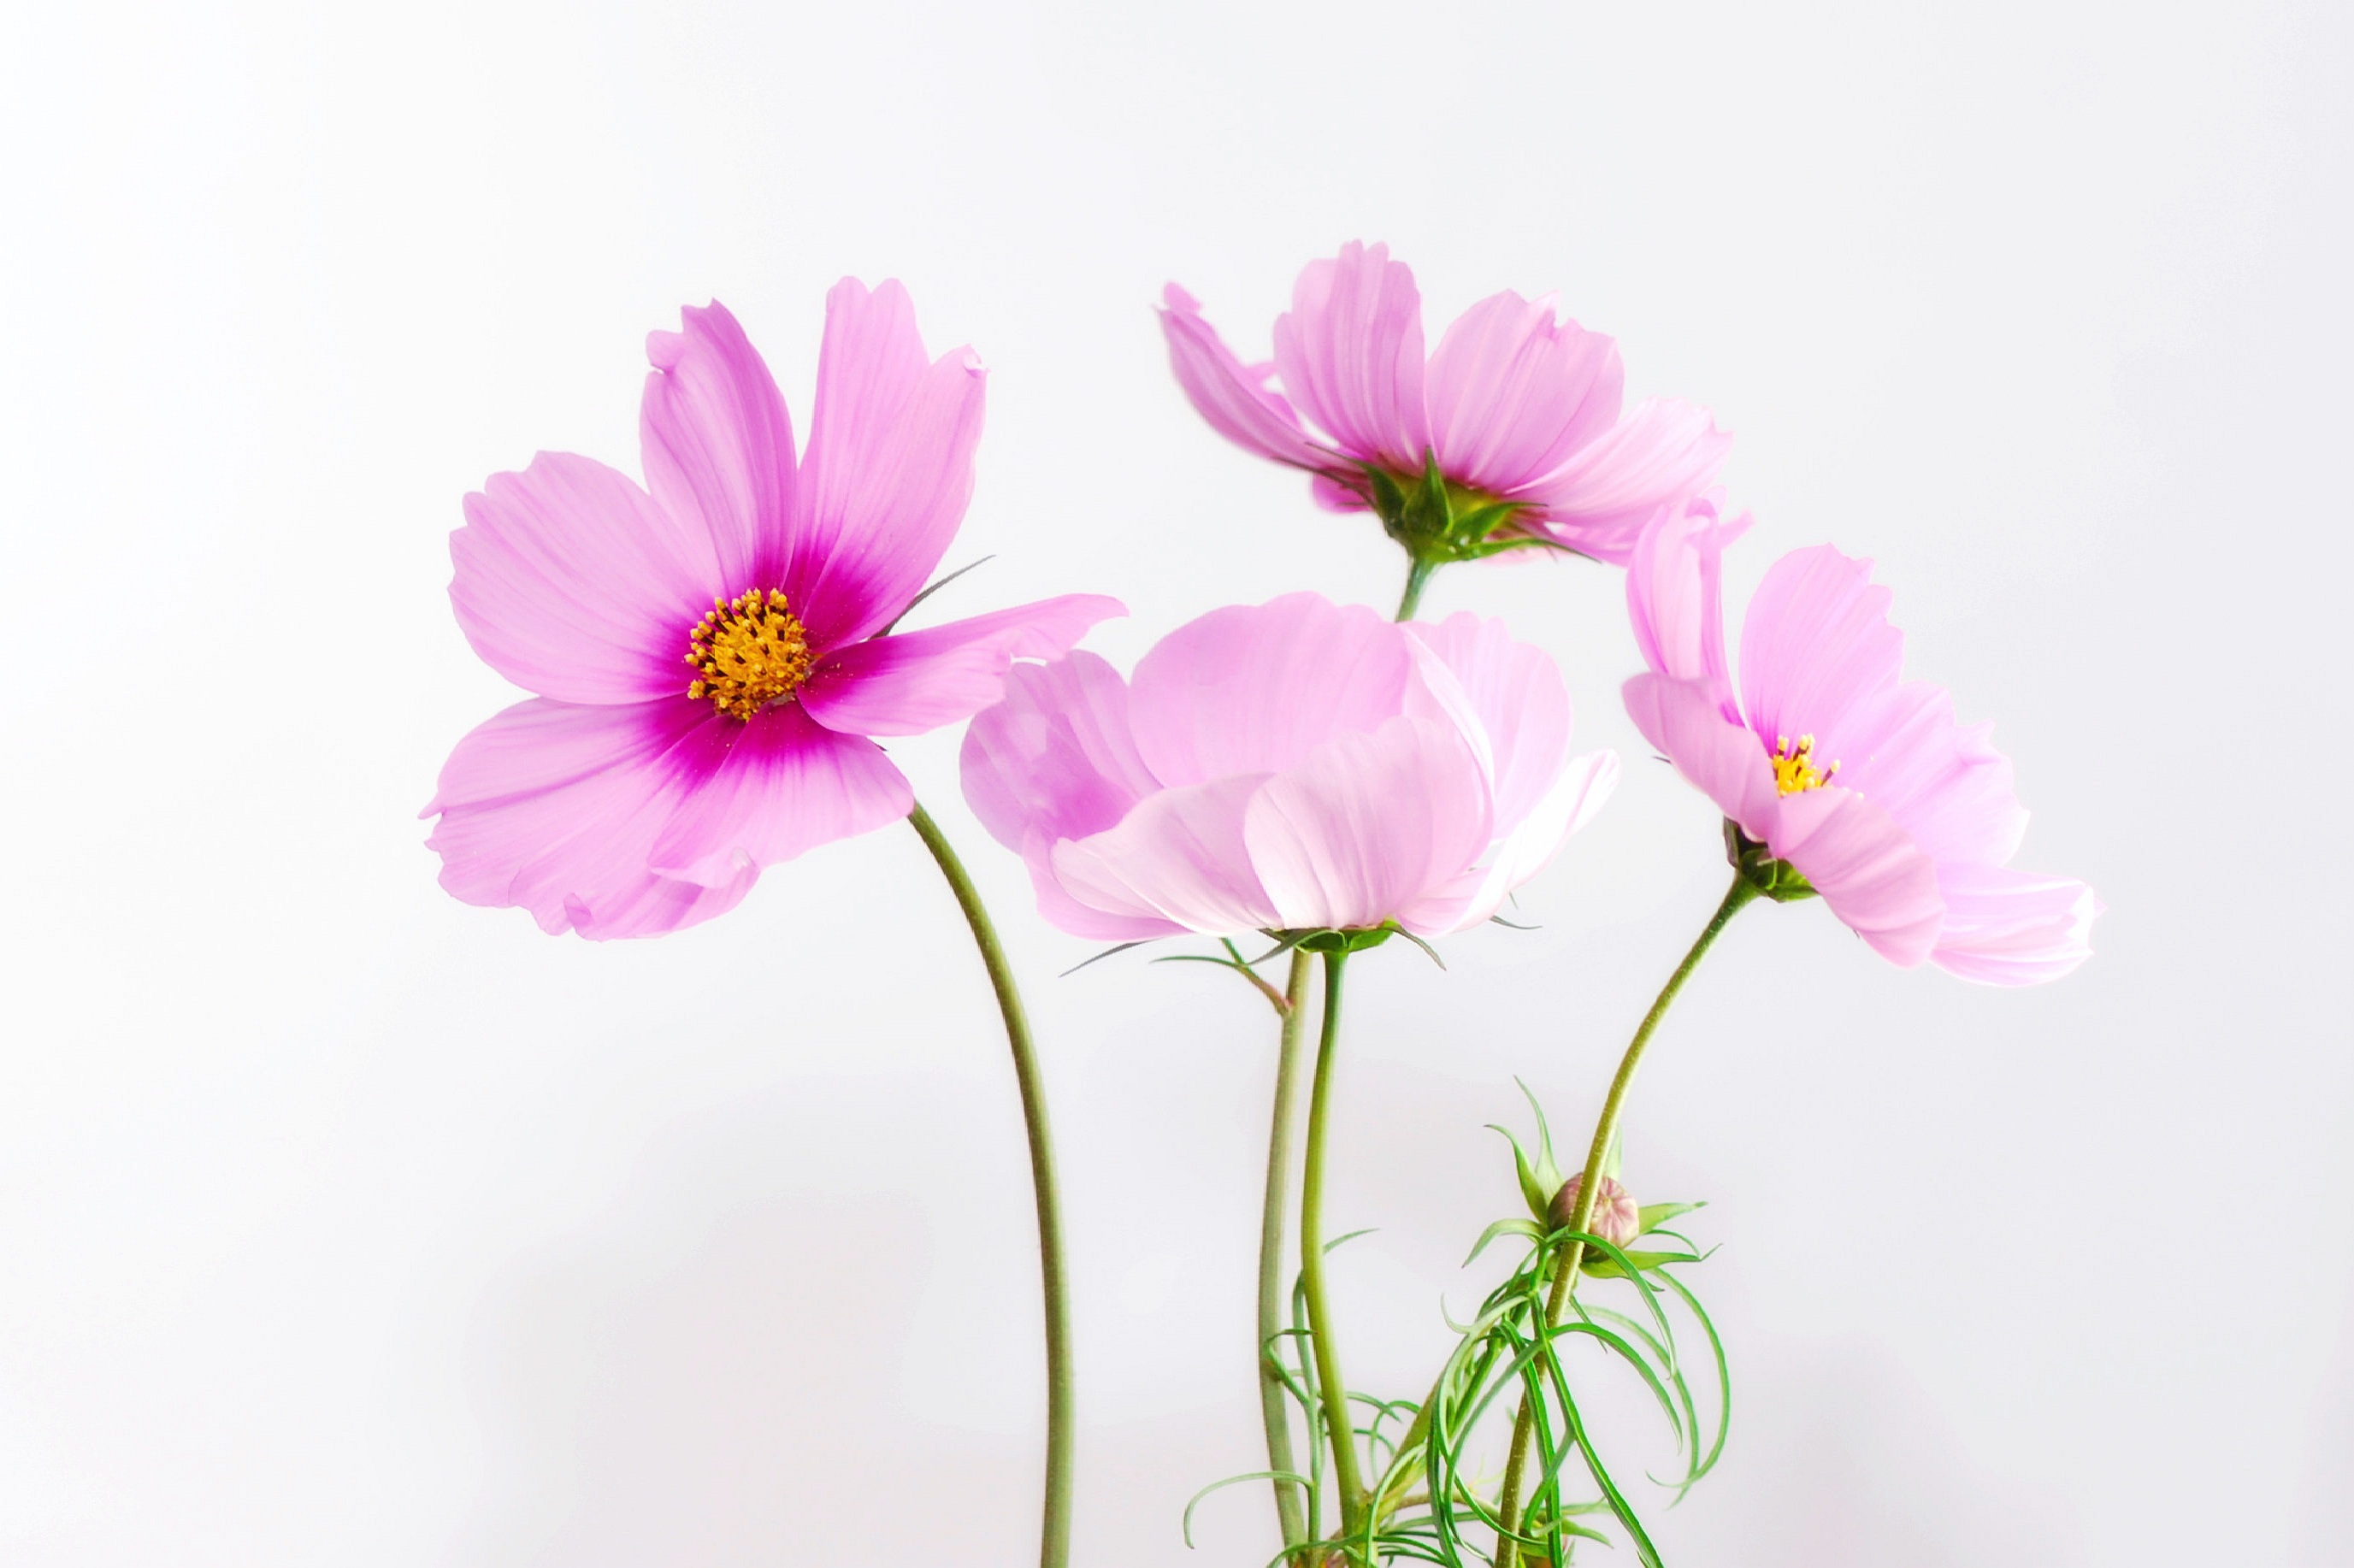 cosmea-flower-blossom-bloom-40722.jpeg (2753×1834)